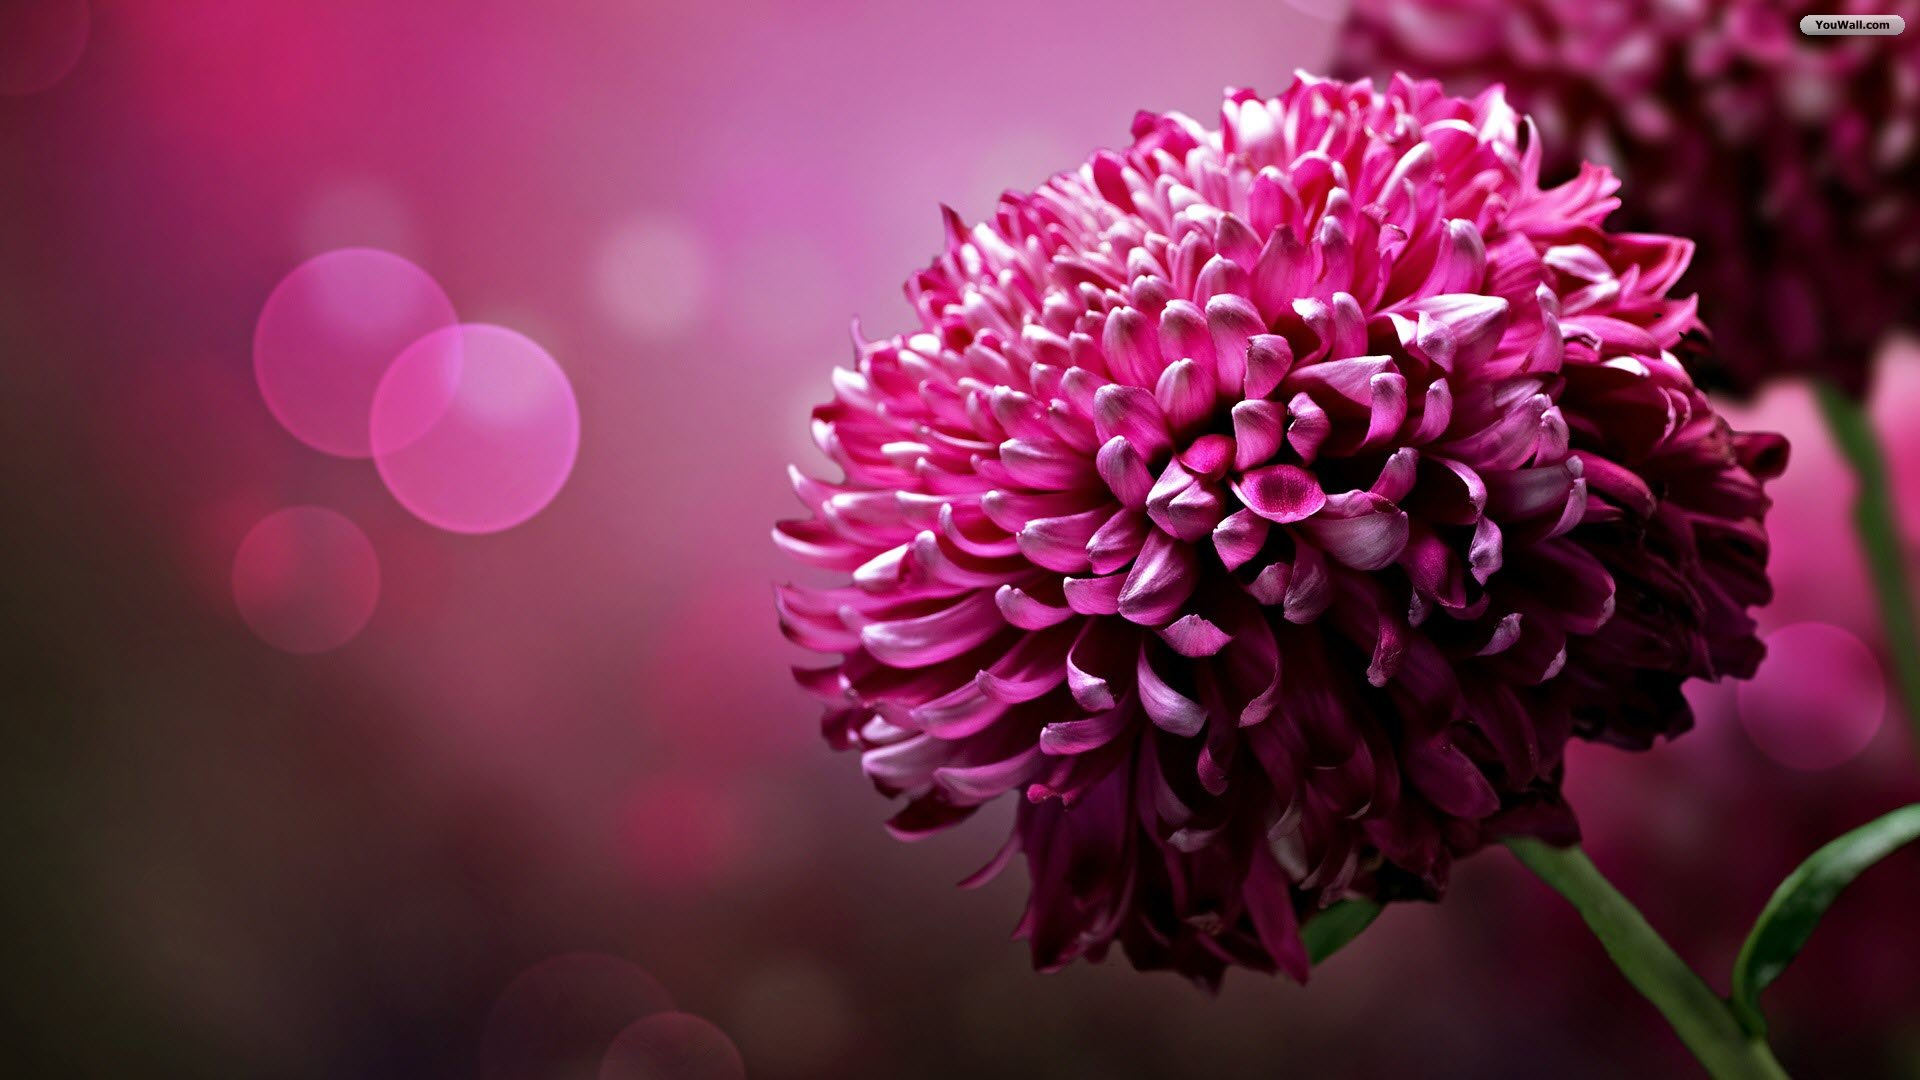 Full Large Purple Flower Wallpapers ...